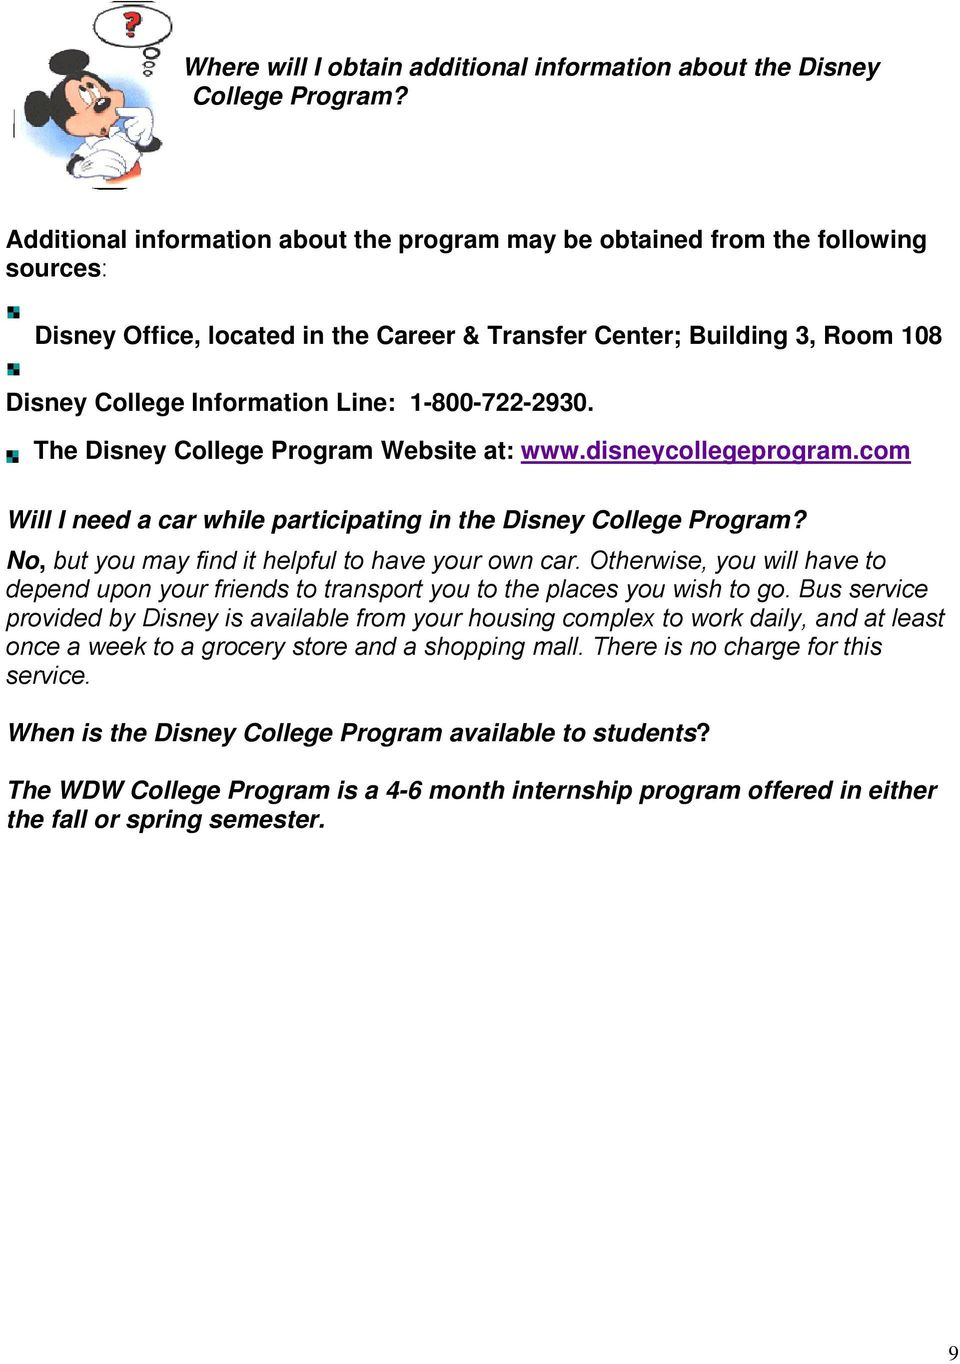 1-800-722-2930. The Disney College Program Website at: www.disneycollegeprogram.com Will I need a car while participating in the Disney College Program?